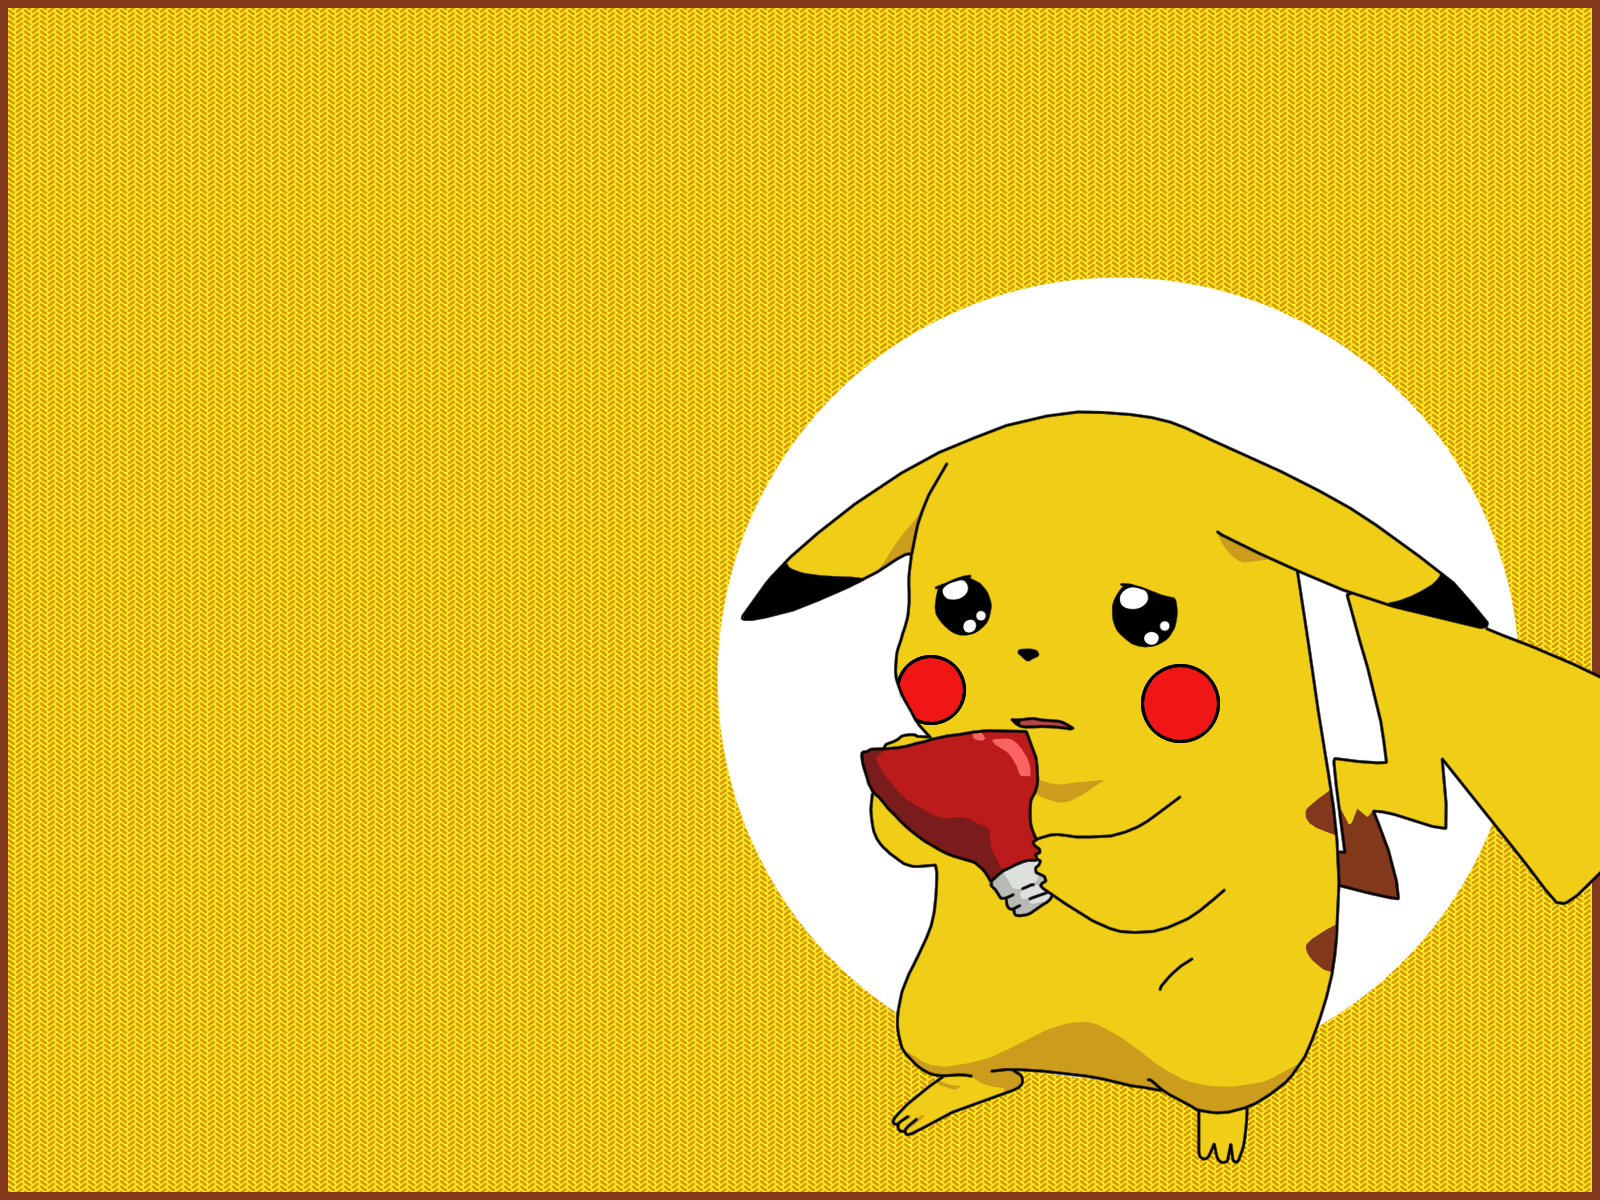 pikachu pokemon wallpaper - photo #9